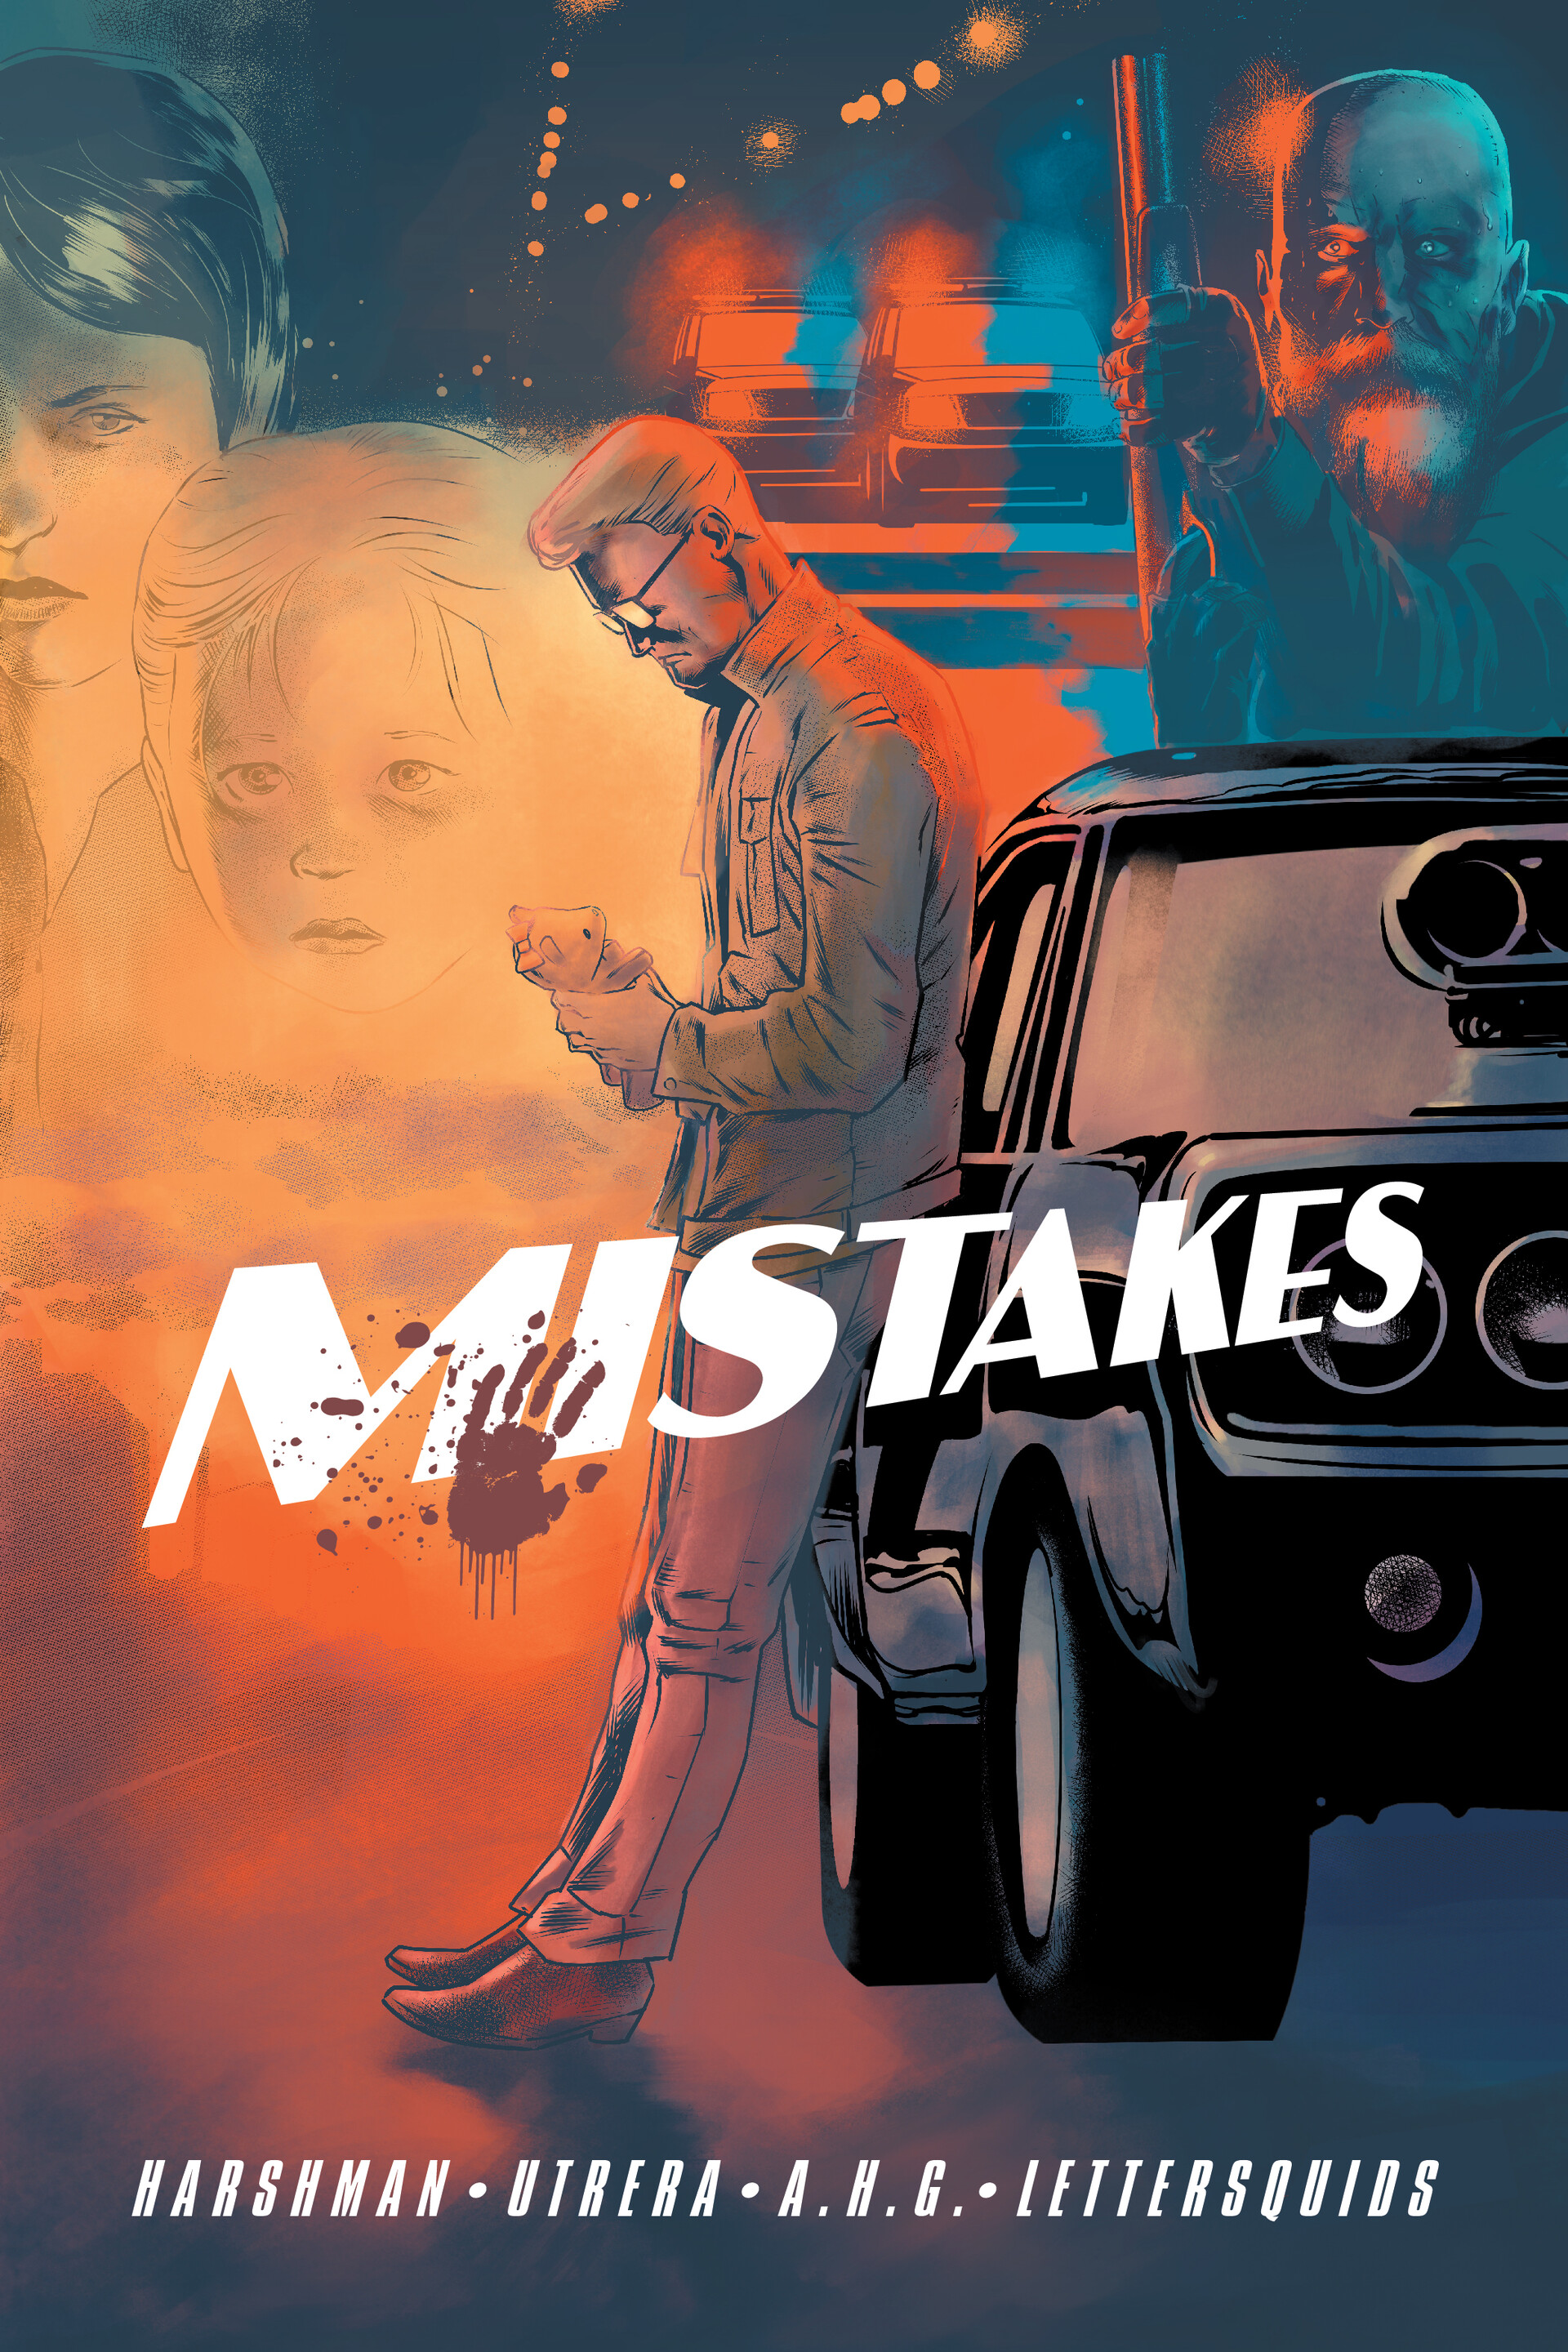 Justin lettersquids mistakes cover